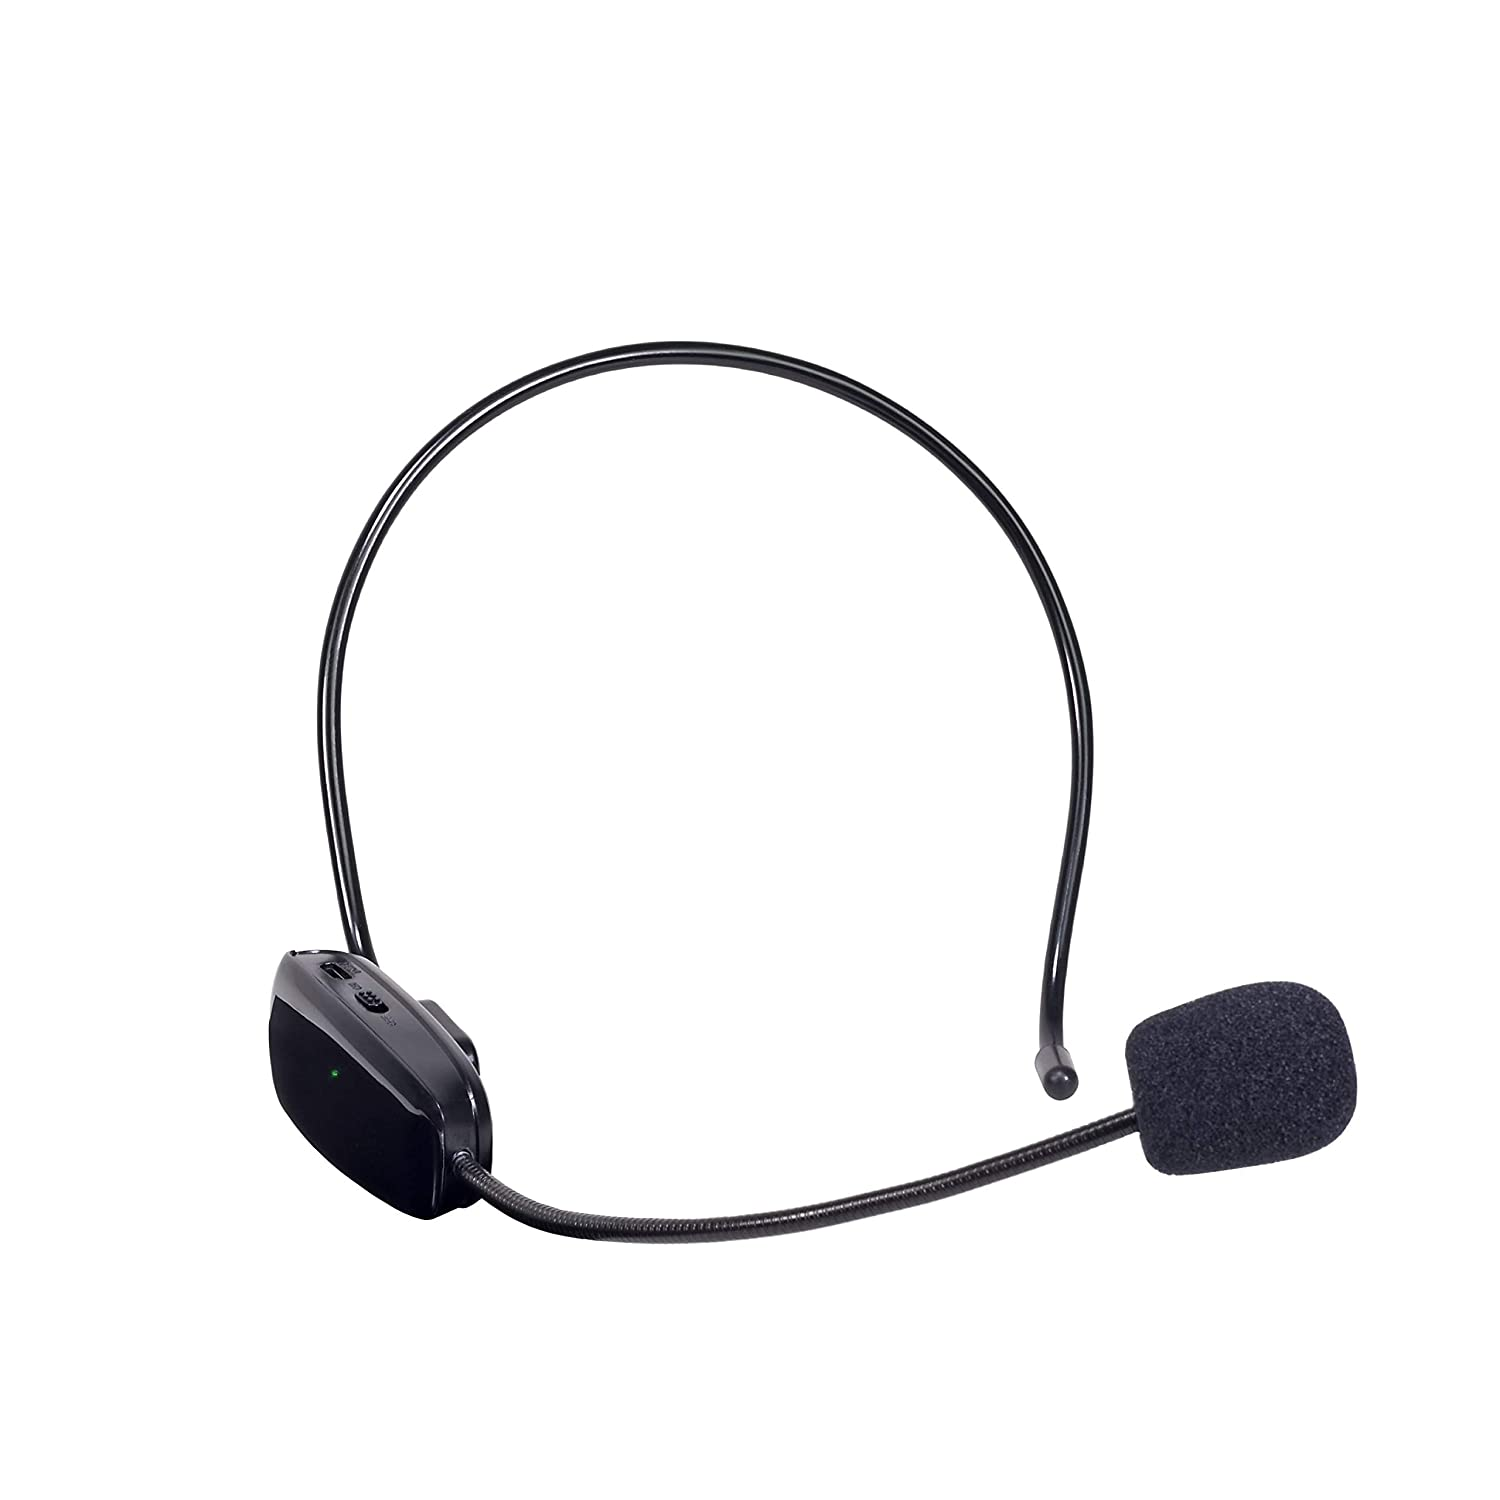 Hisonic HS100A 2.4G 40-Channel Auto-pairing Wireless Headset Microphone